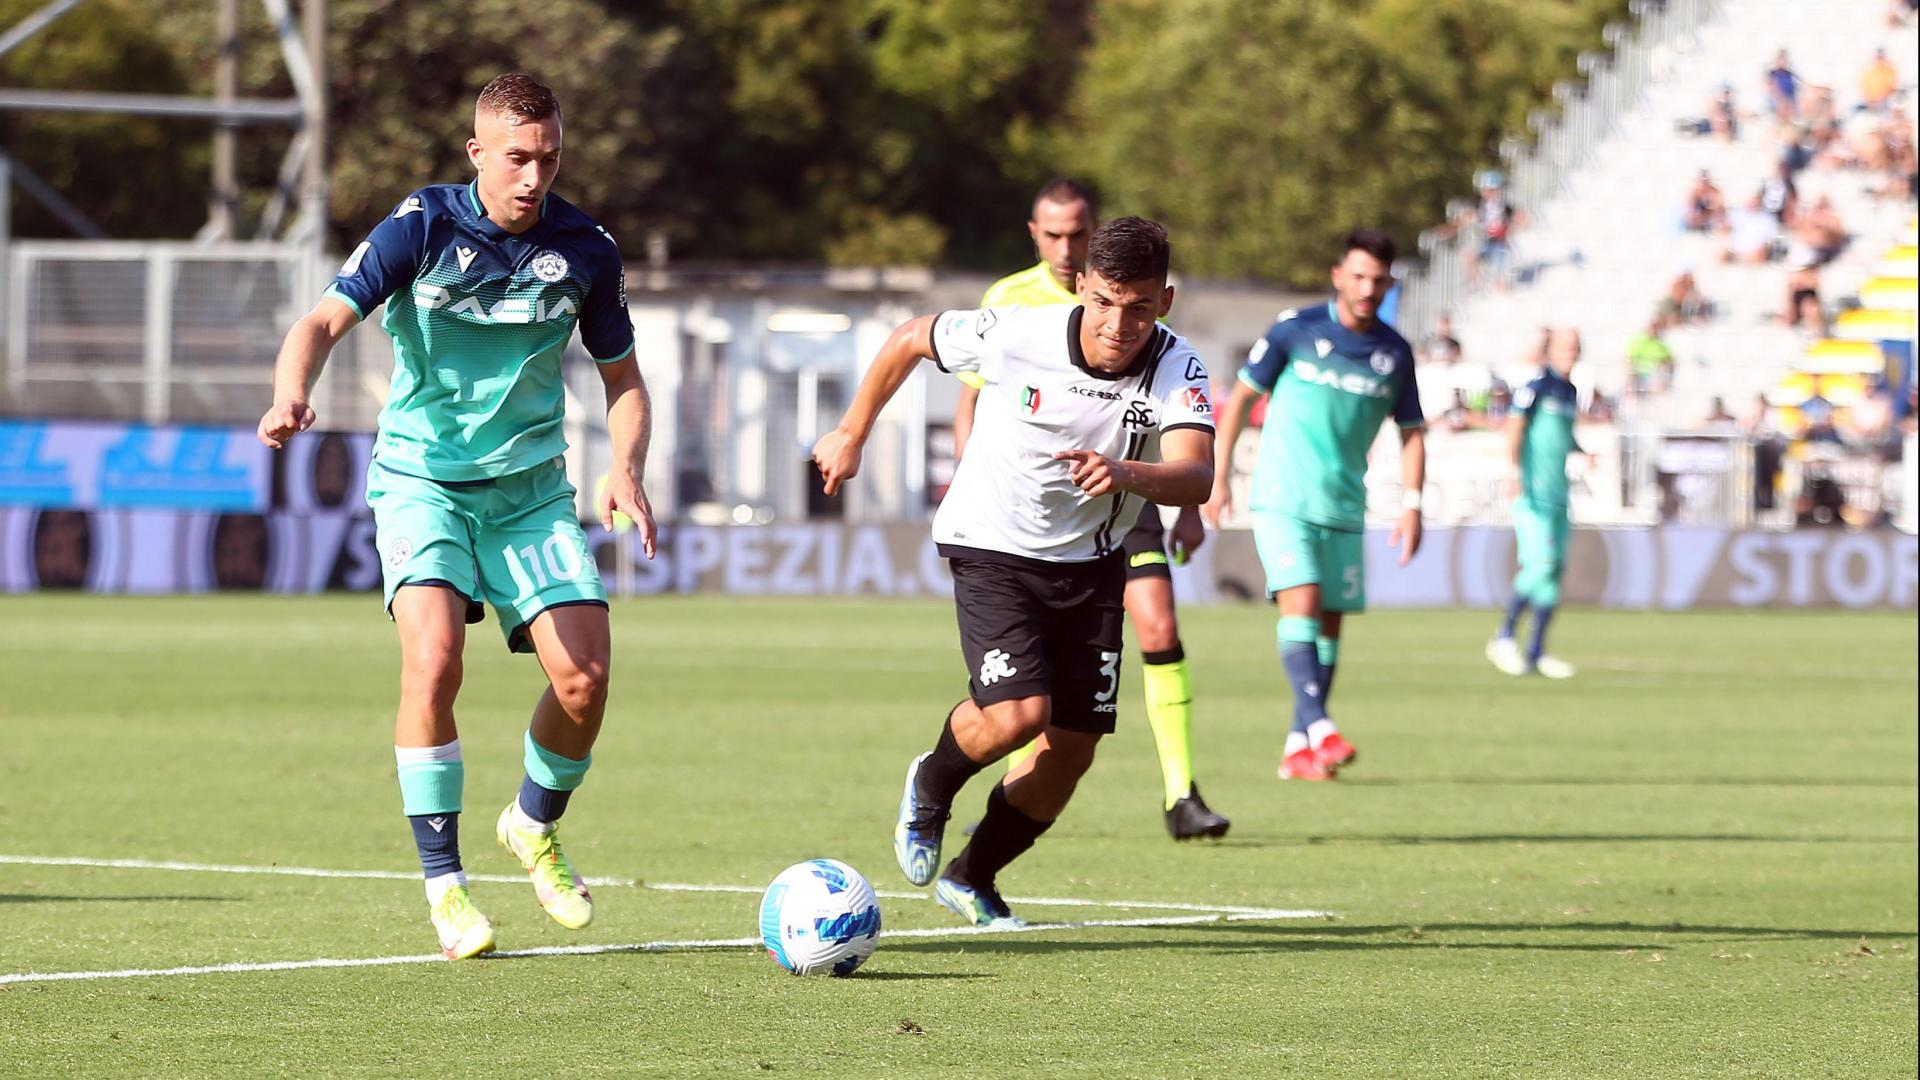 Spezia-Udinese 0-1: the highlights